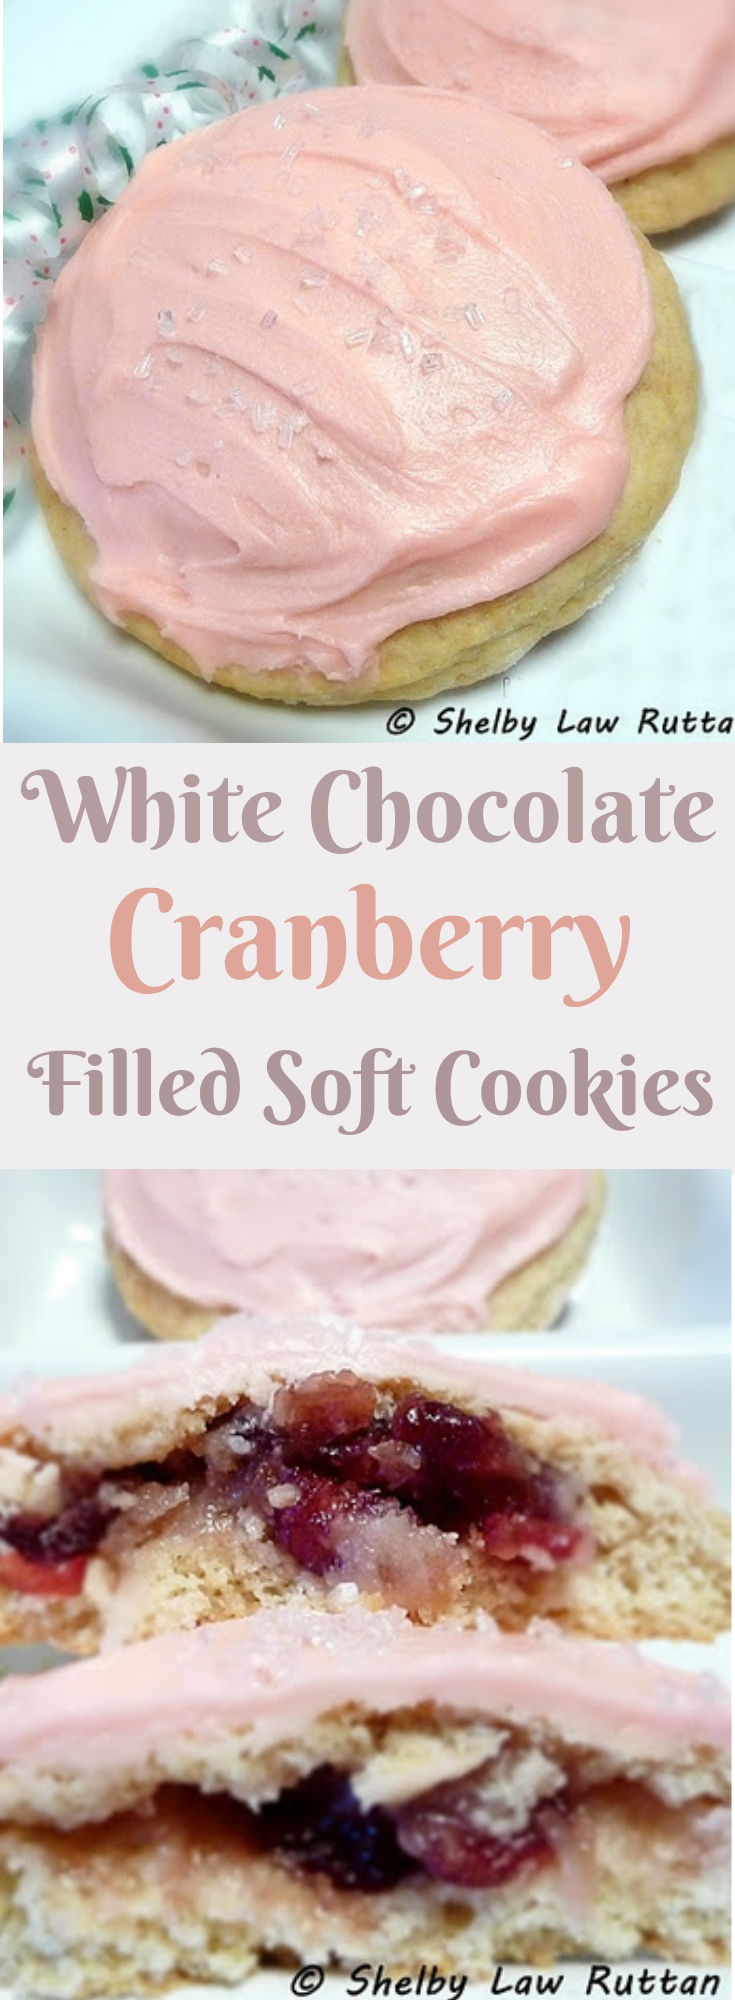 Filled Soft Cookies